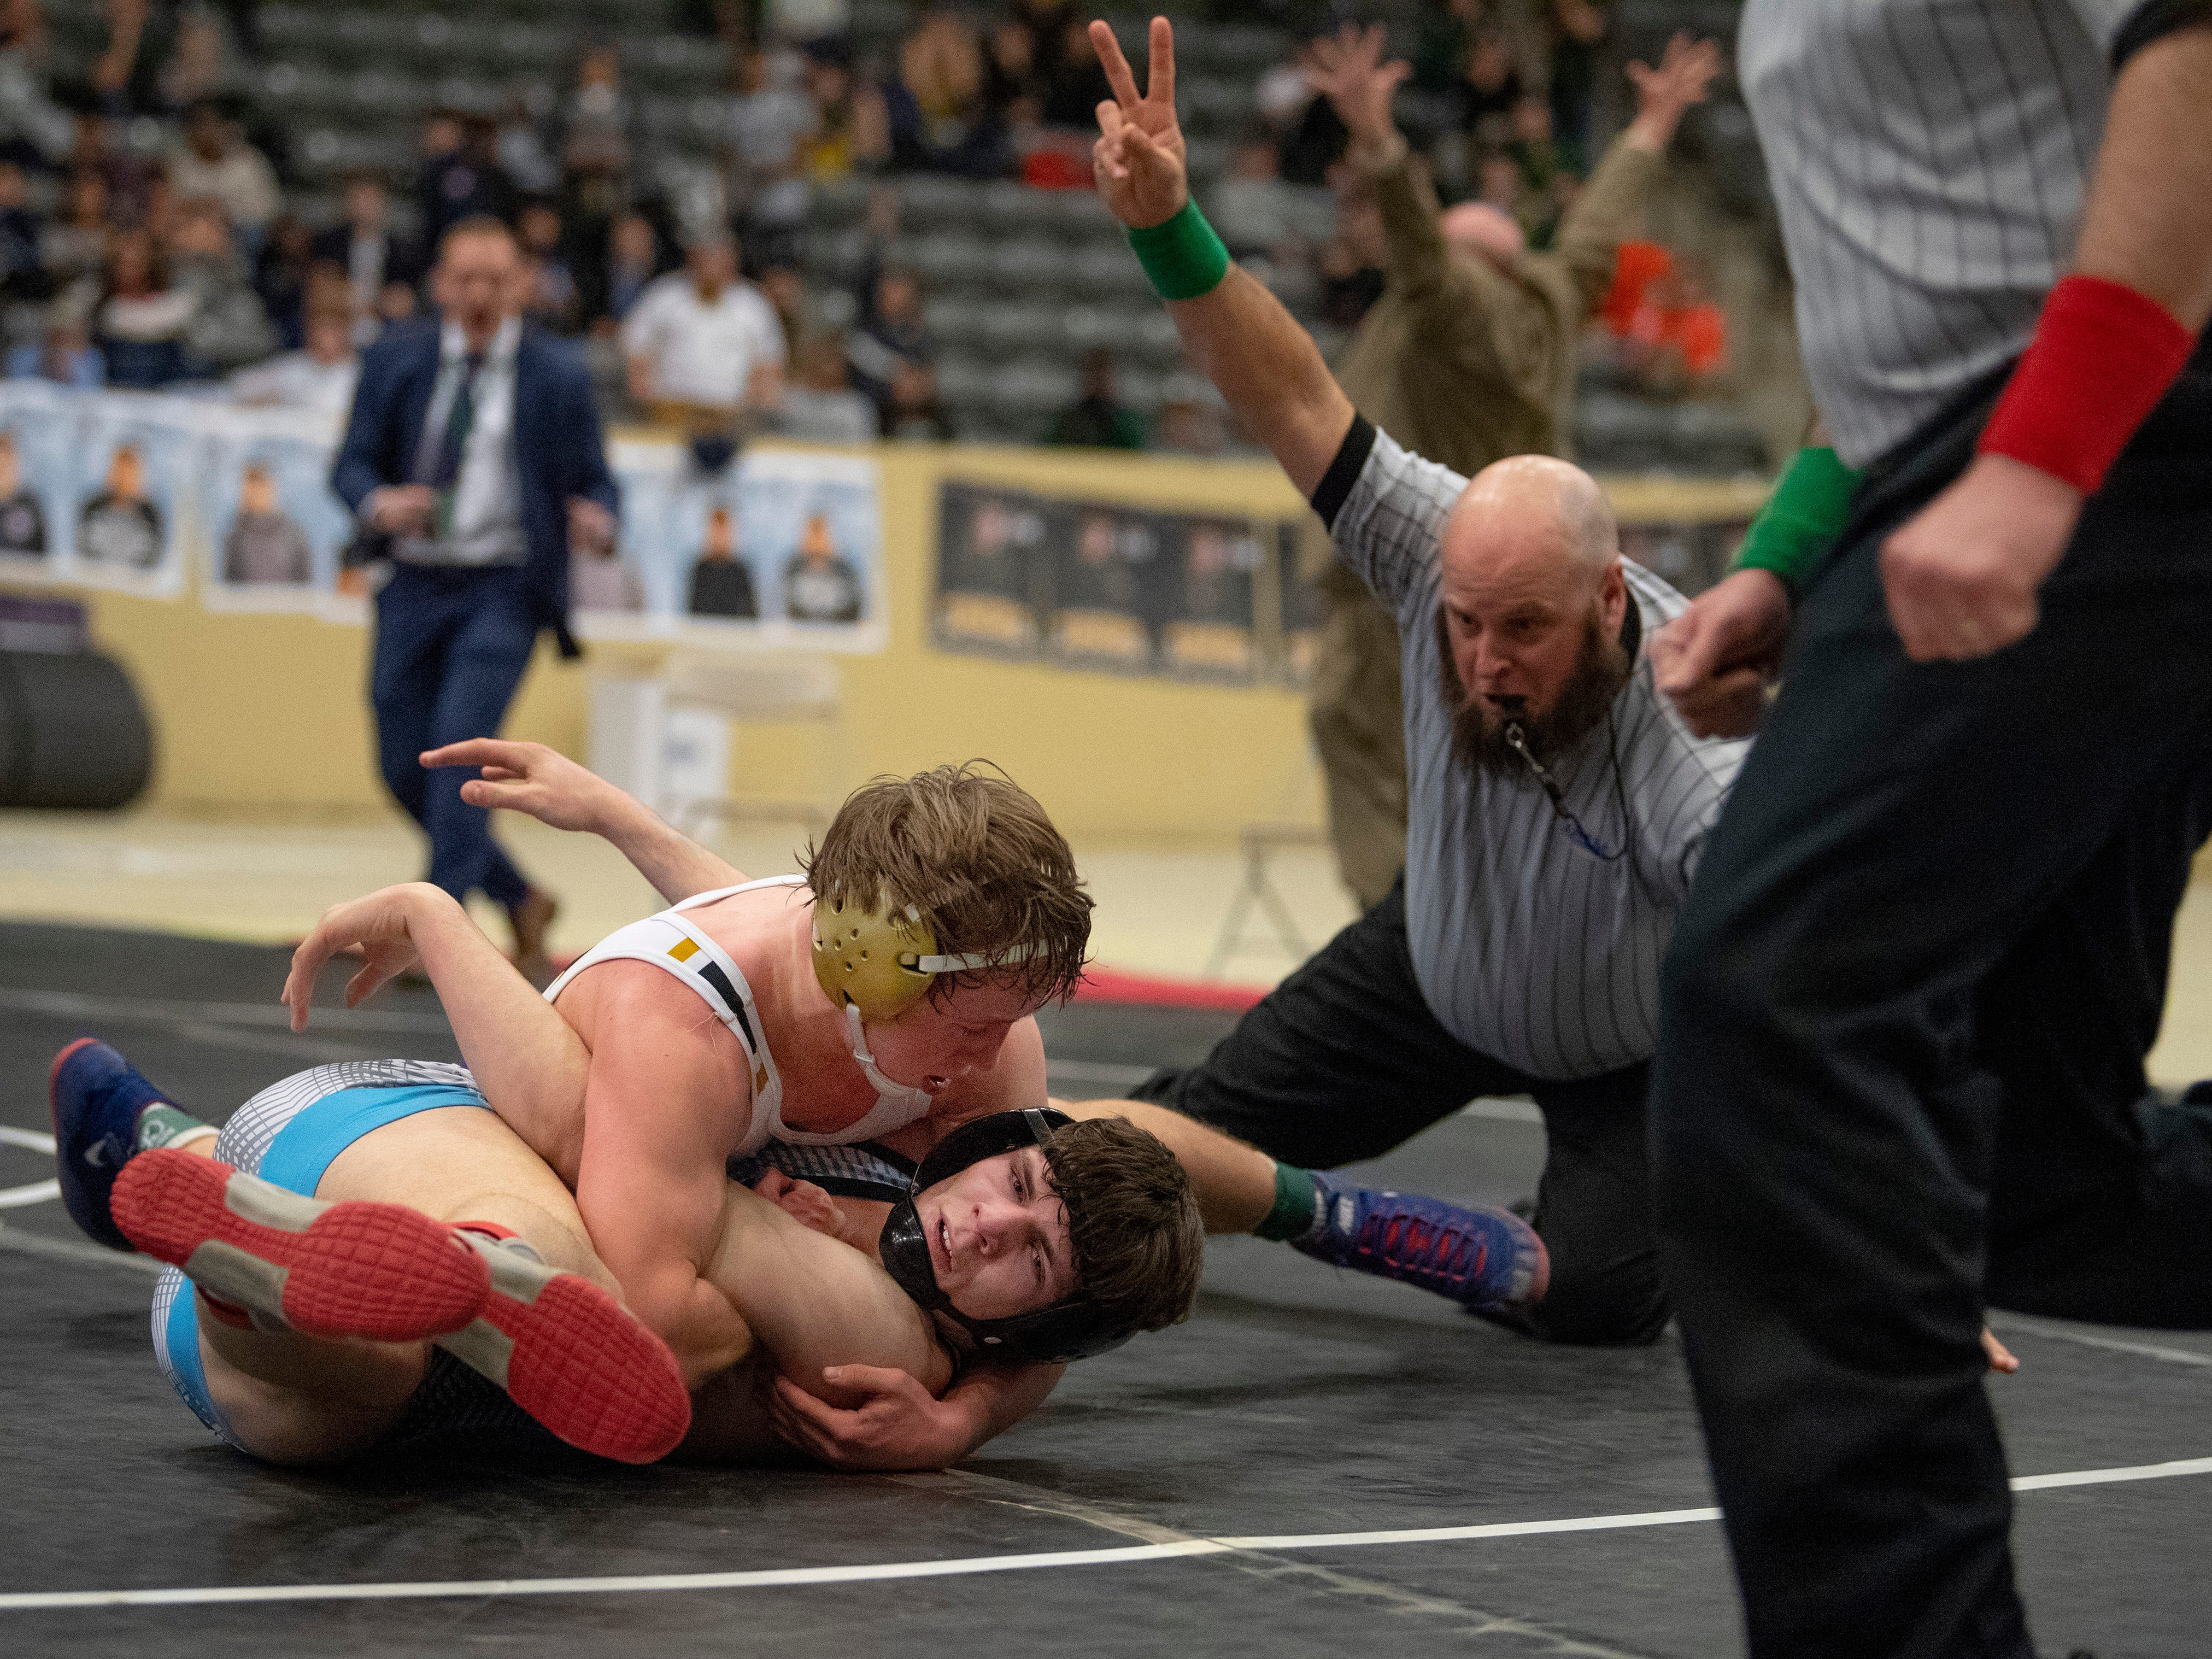 Male's Zane Brown pins Union County's Stephen Little at the 5:32 mark of their 160-pound championship match at the KHSAA State Wrestling Championships at the Alltech Arena in Lexington, Ky., Saturday afternoon.